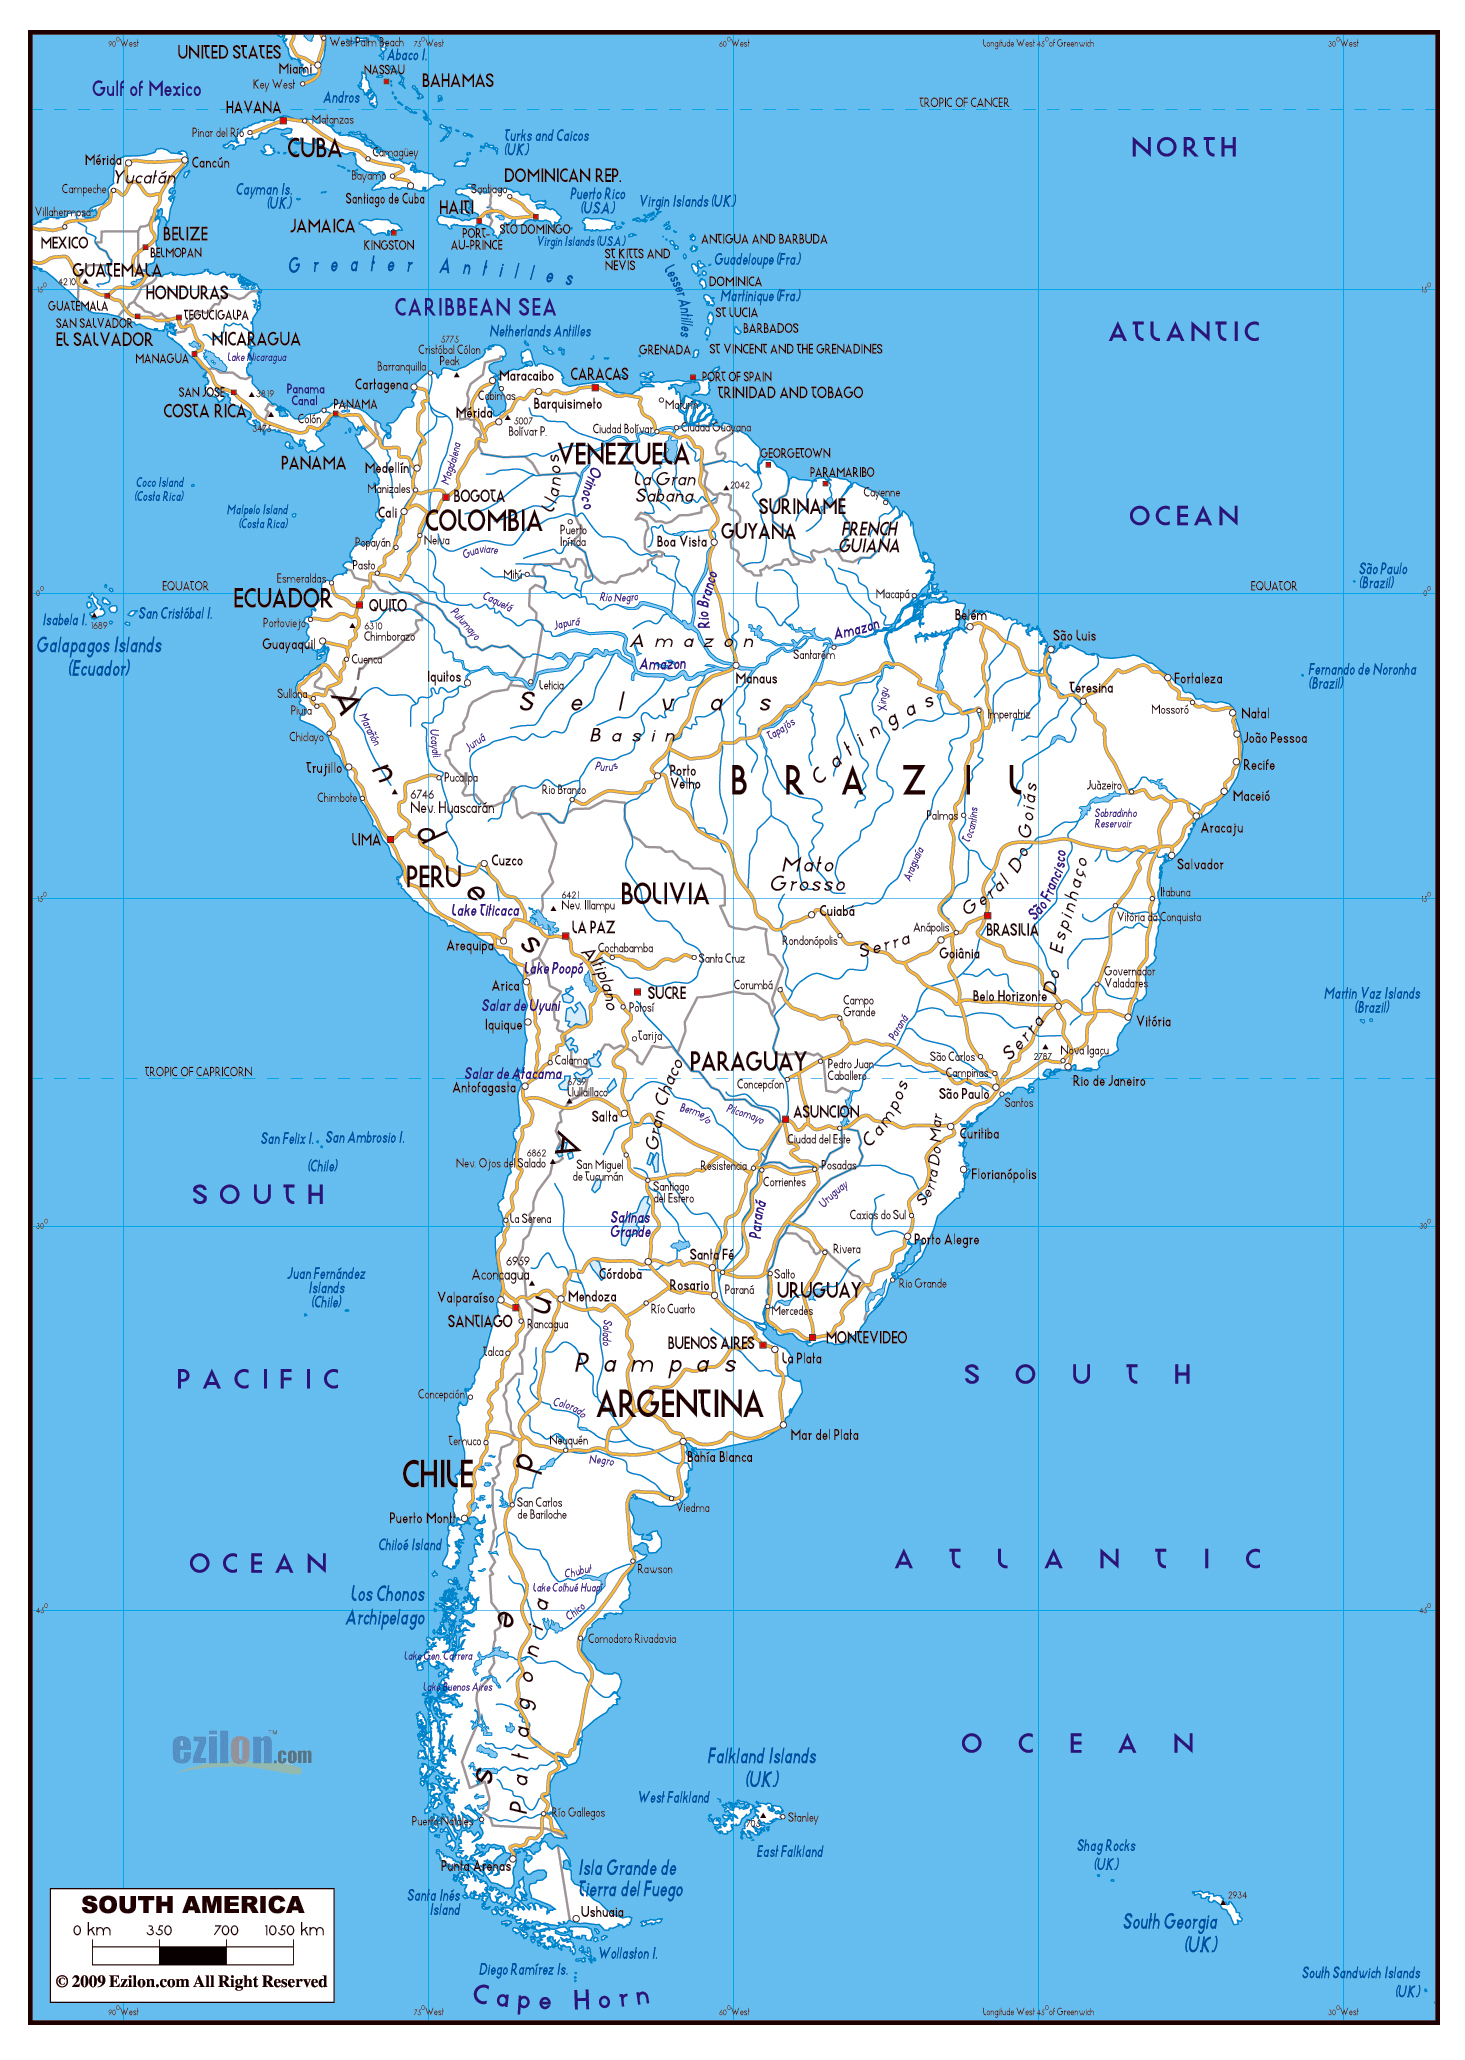 Cities Of America Map.Large Road Map Of South America With Major Cities South America